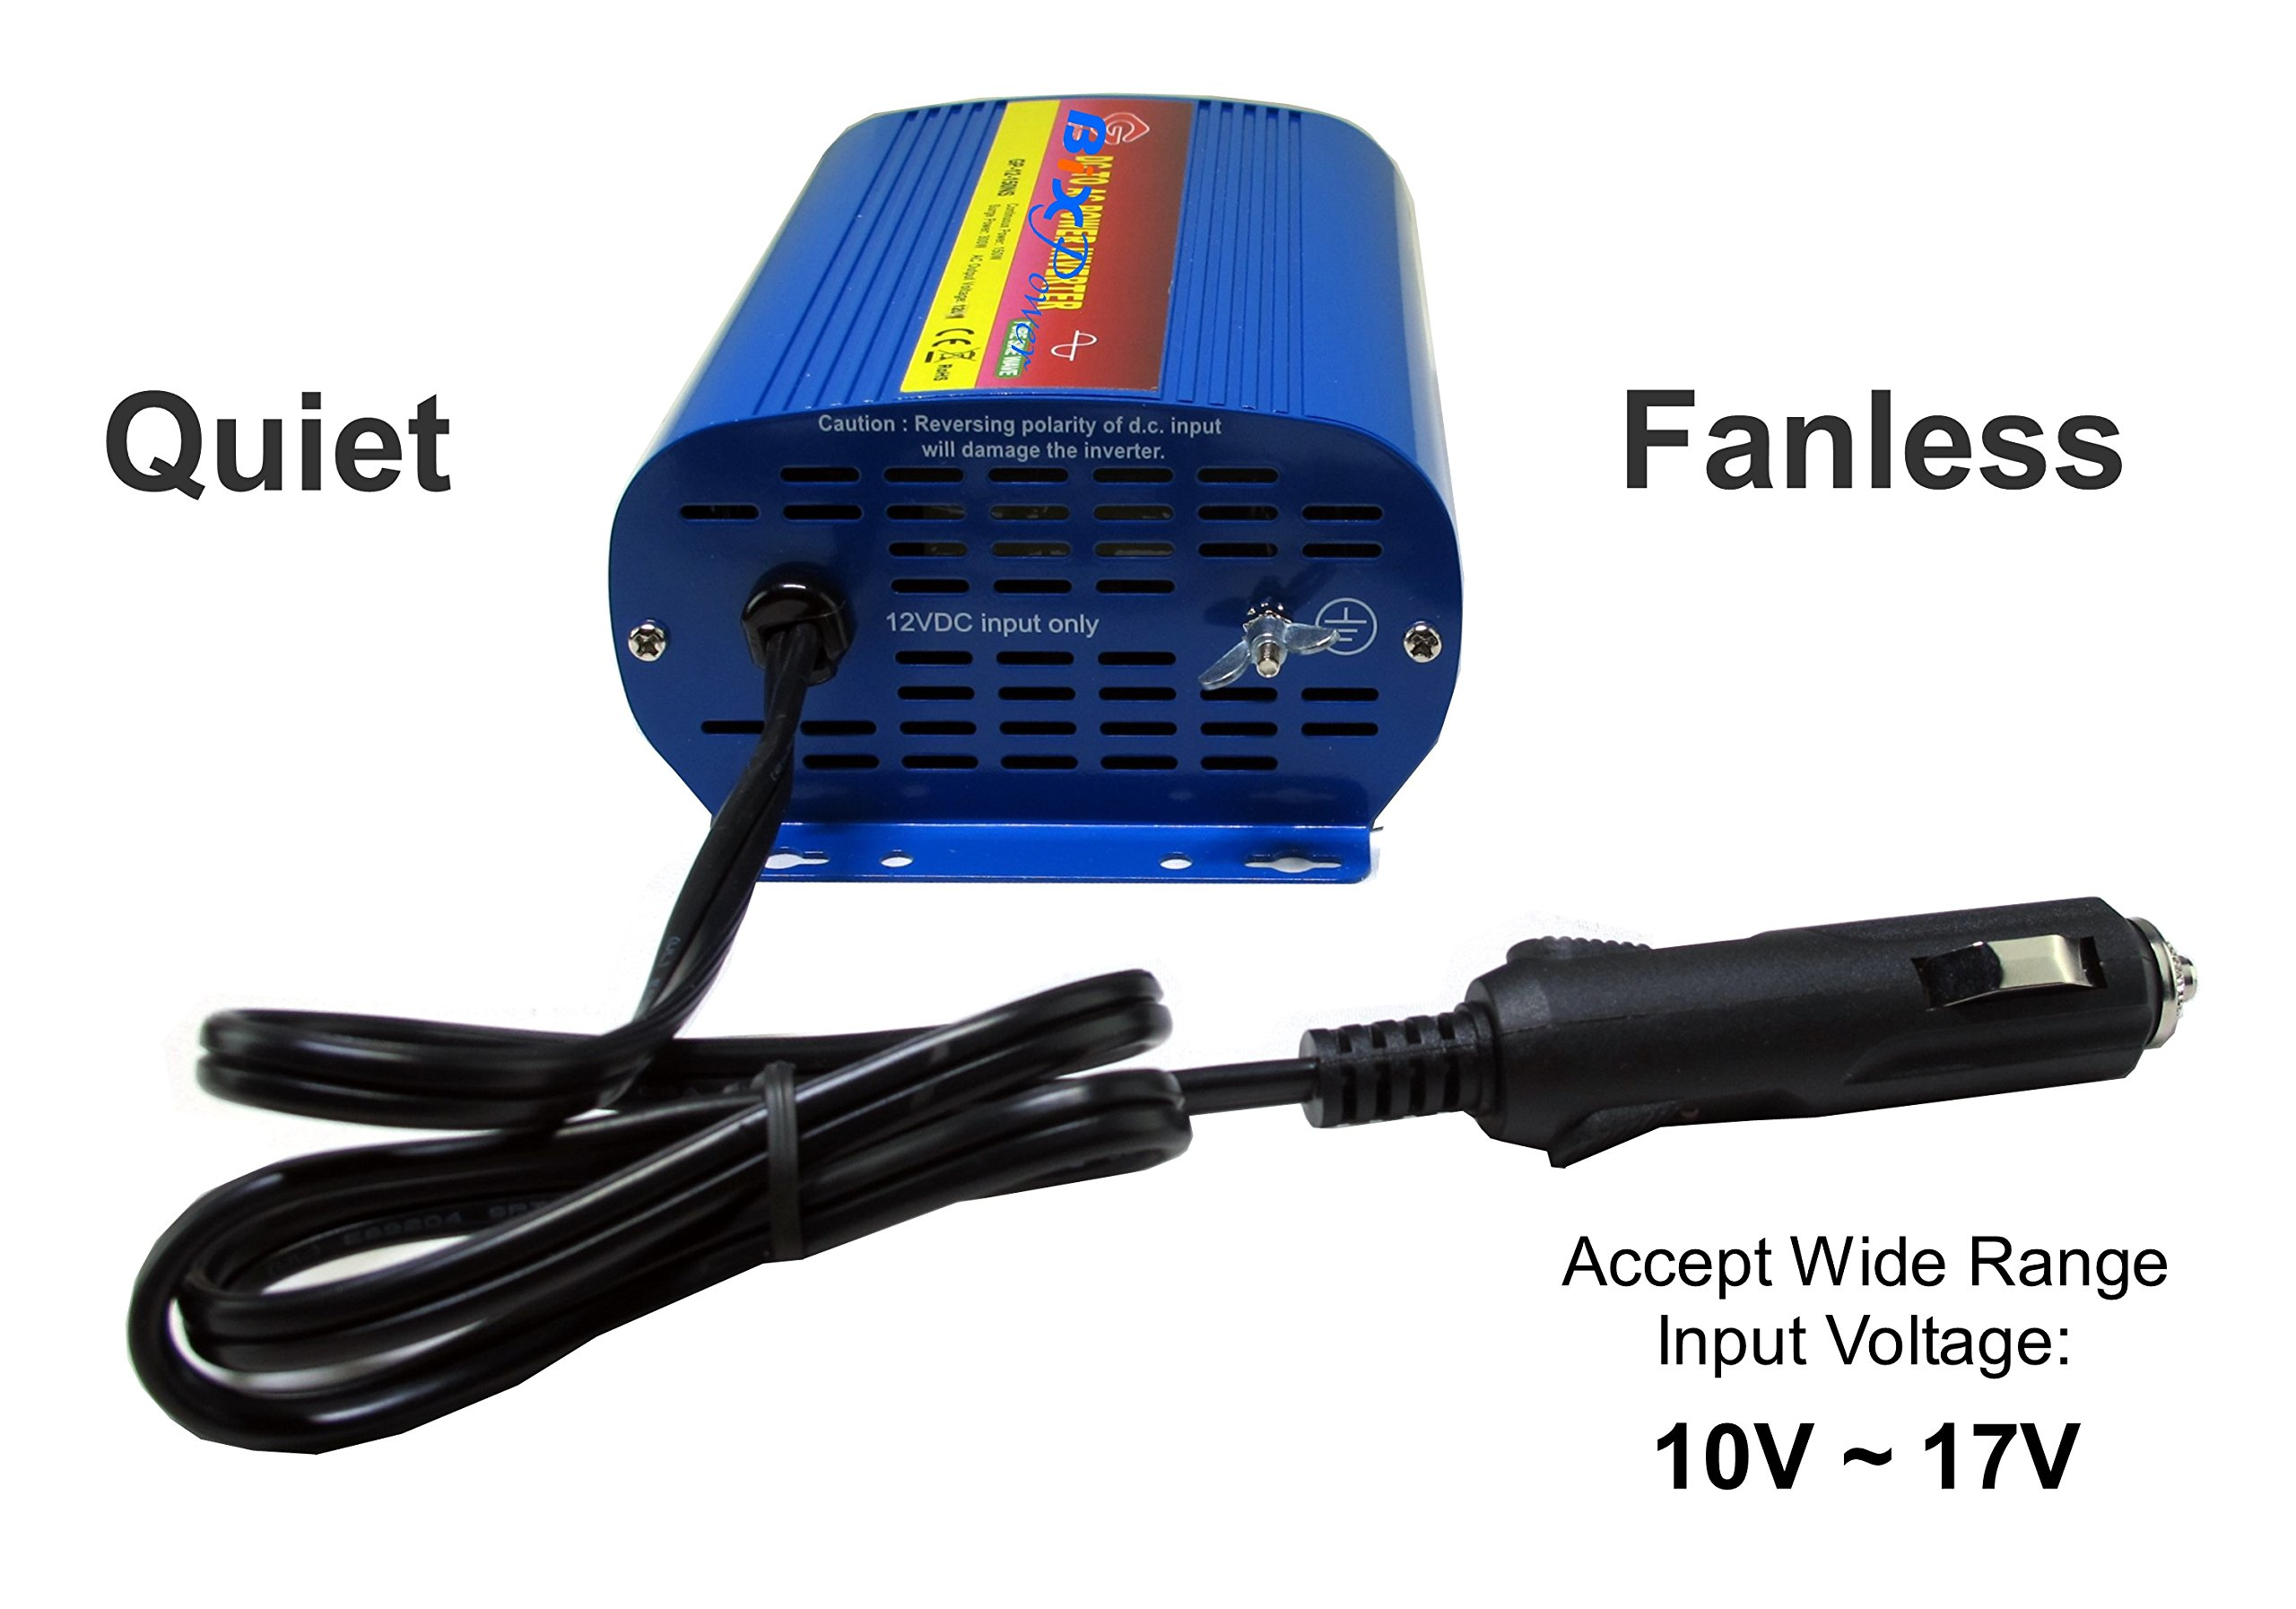 BiXPower XP200 Pure Sine AC Power Pack - 150W Pure Sine Wave AC Power Inverter with 192Wh Lithium Ion Battery by BiXPower (Image #6)